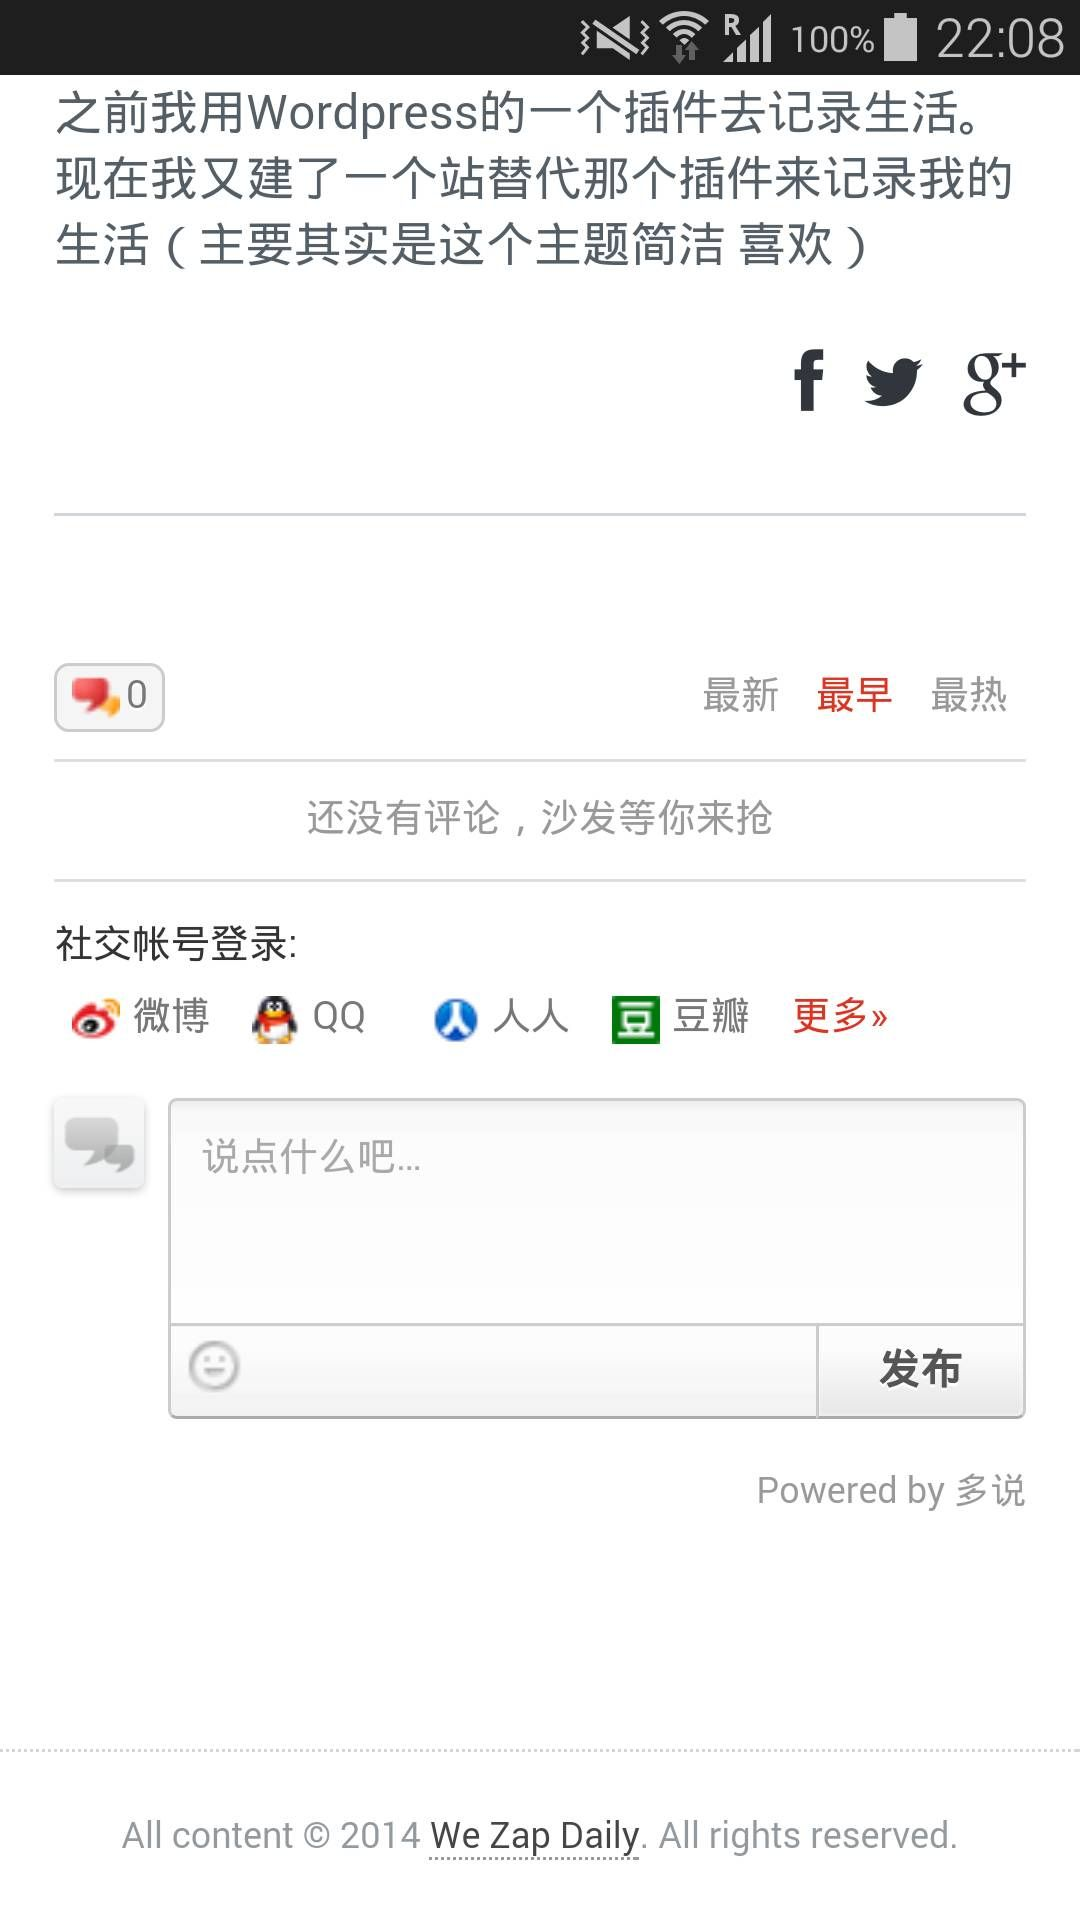 The Screenshot of MobilePostComment page